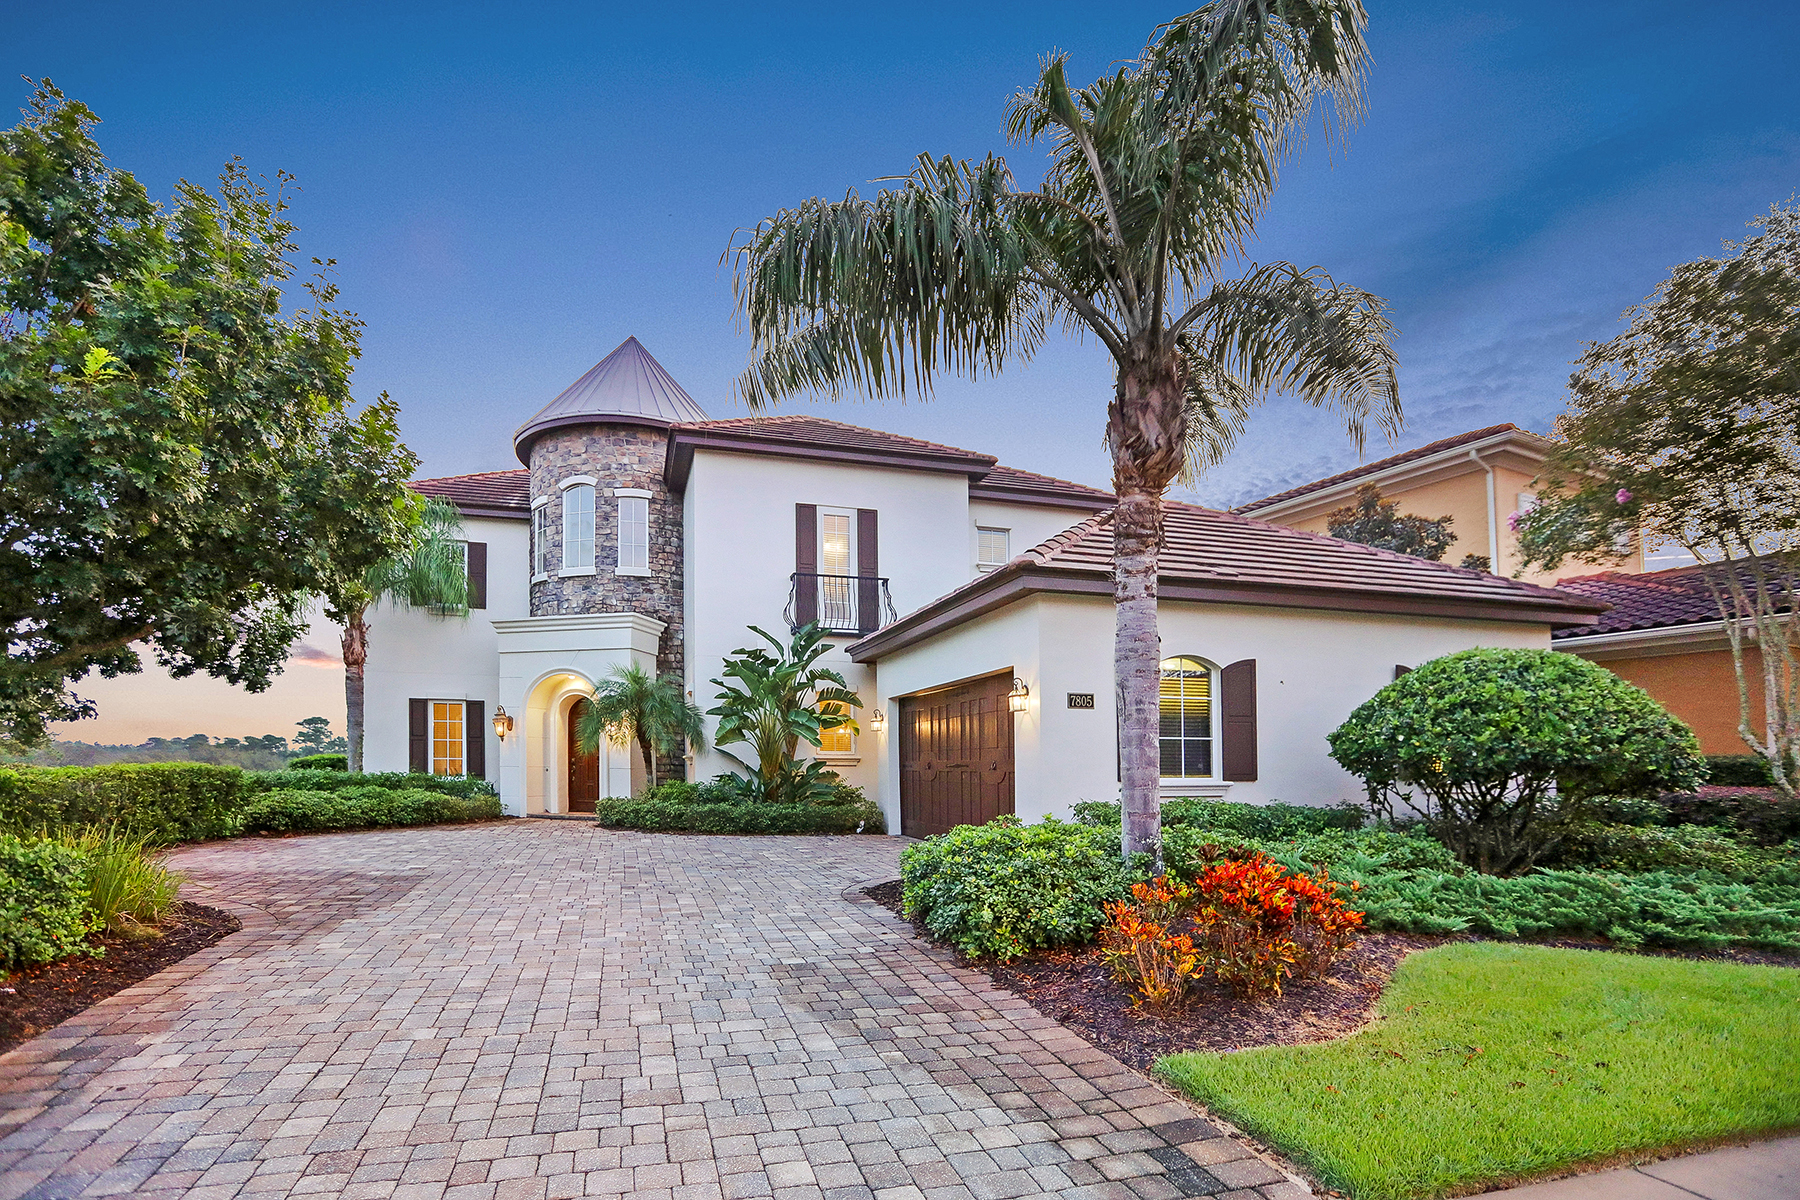 Single Family Homes for Active at REUNION 7805 Palmilla Ct Reunion, Florida 34747 United States